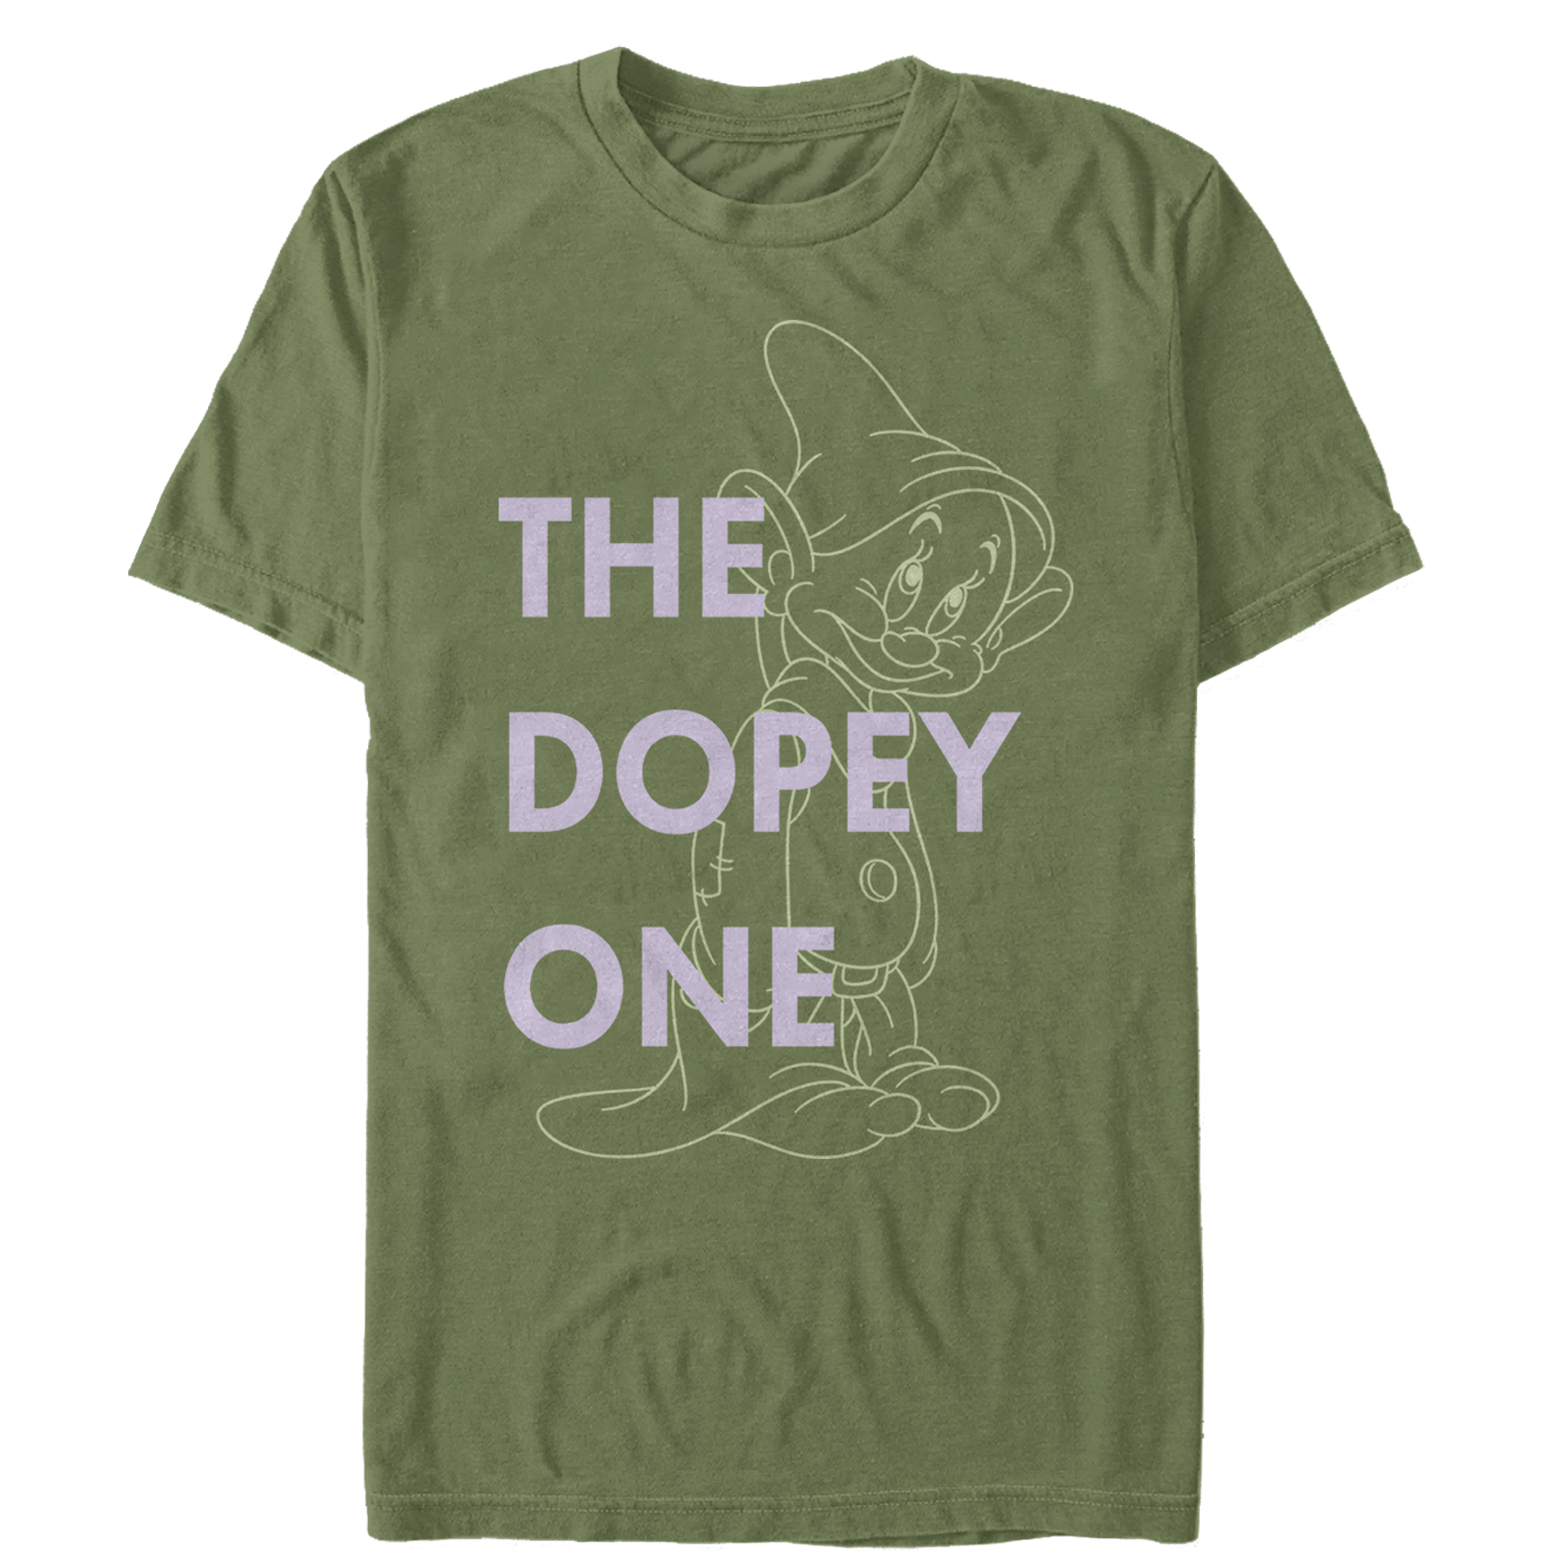 Snow White and the Seven Dwarves Men's Dopey One T-Shirt